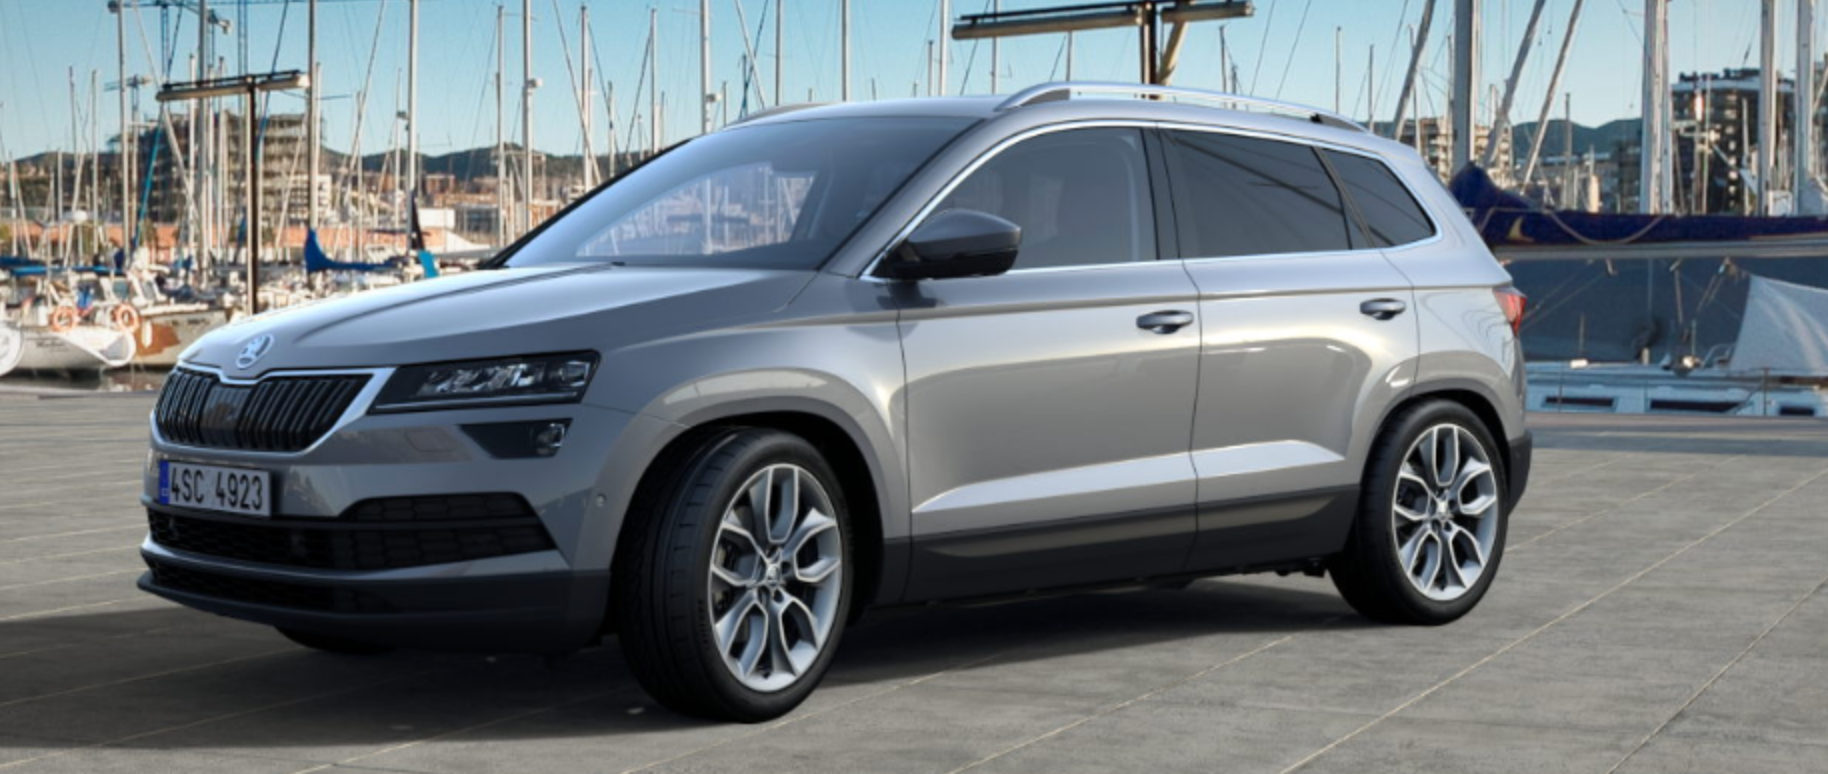 Auto Paint Colors >> Skoda Karoq colours guide and prices | carwow